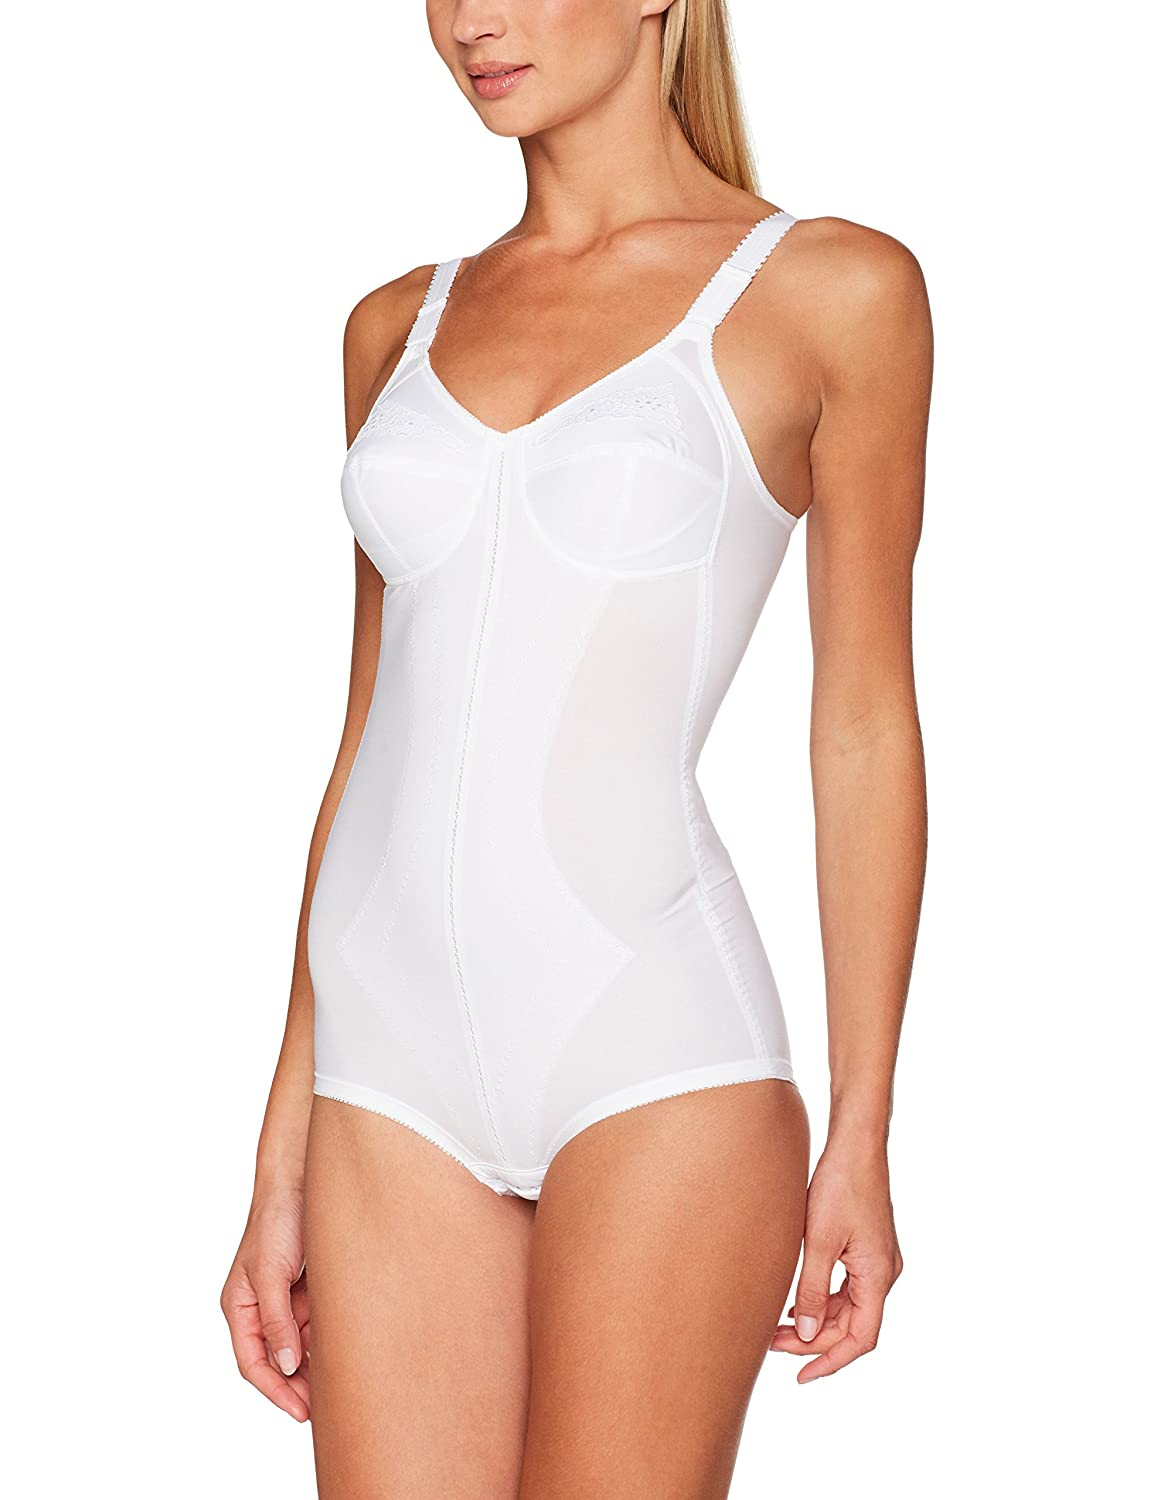 Playtex I Can't Believe It's a Girdle All in One Bodysuit US